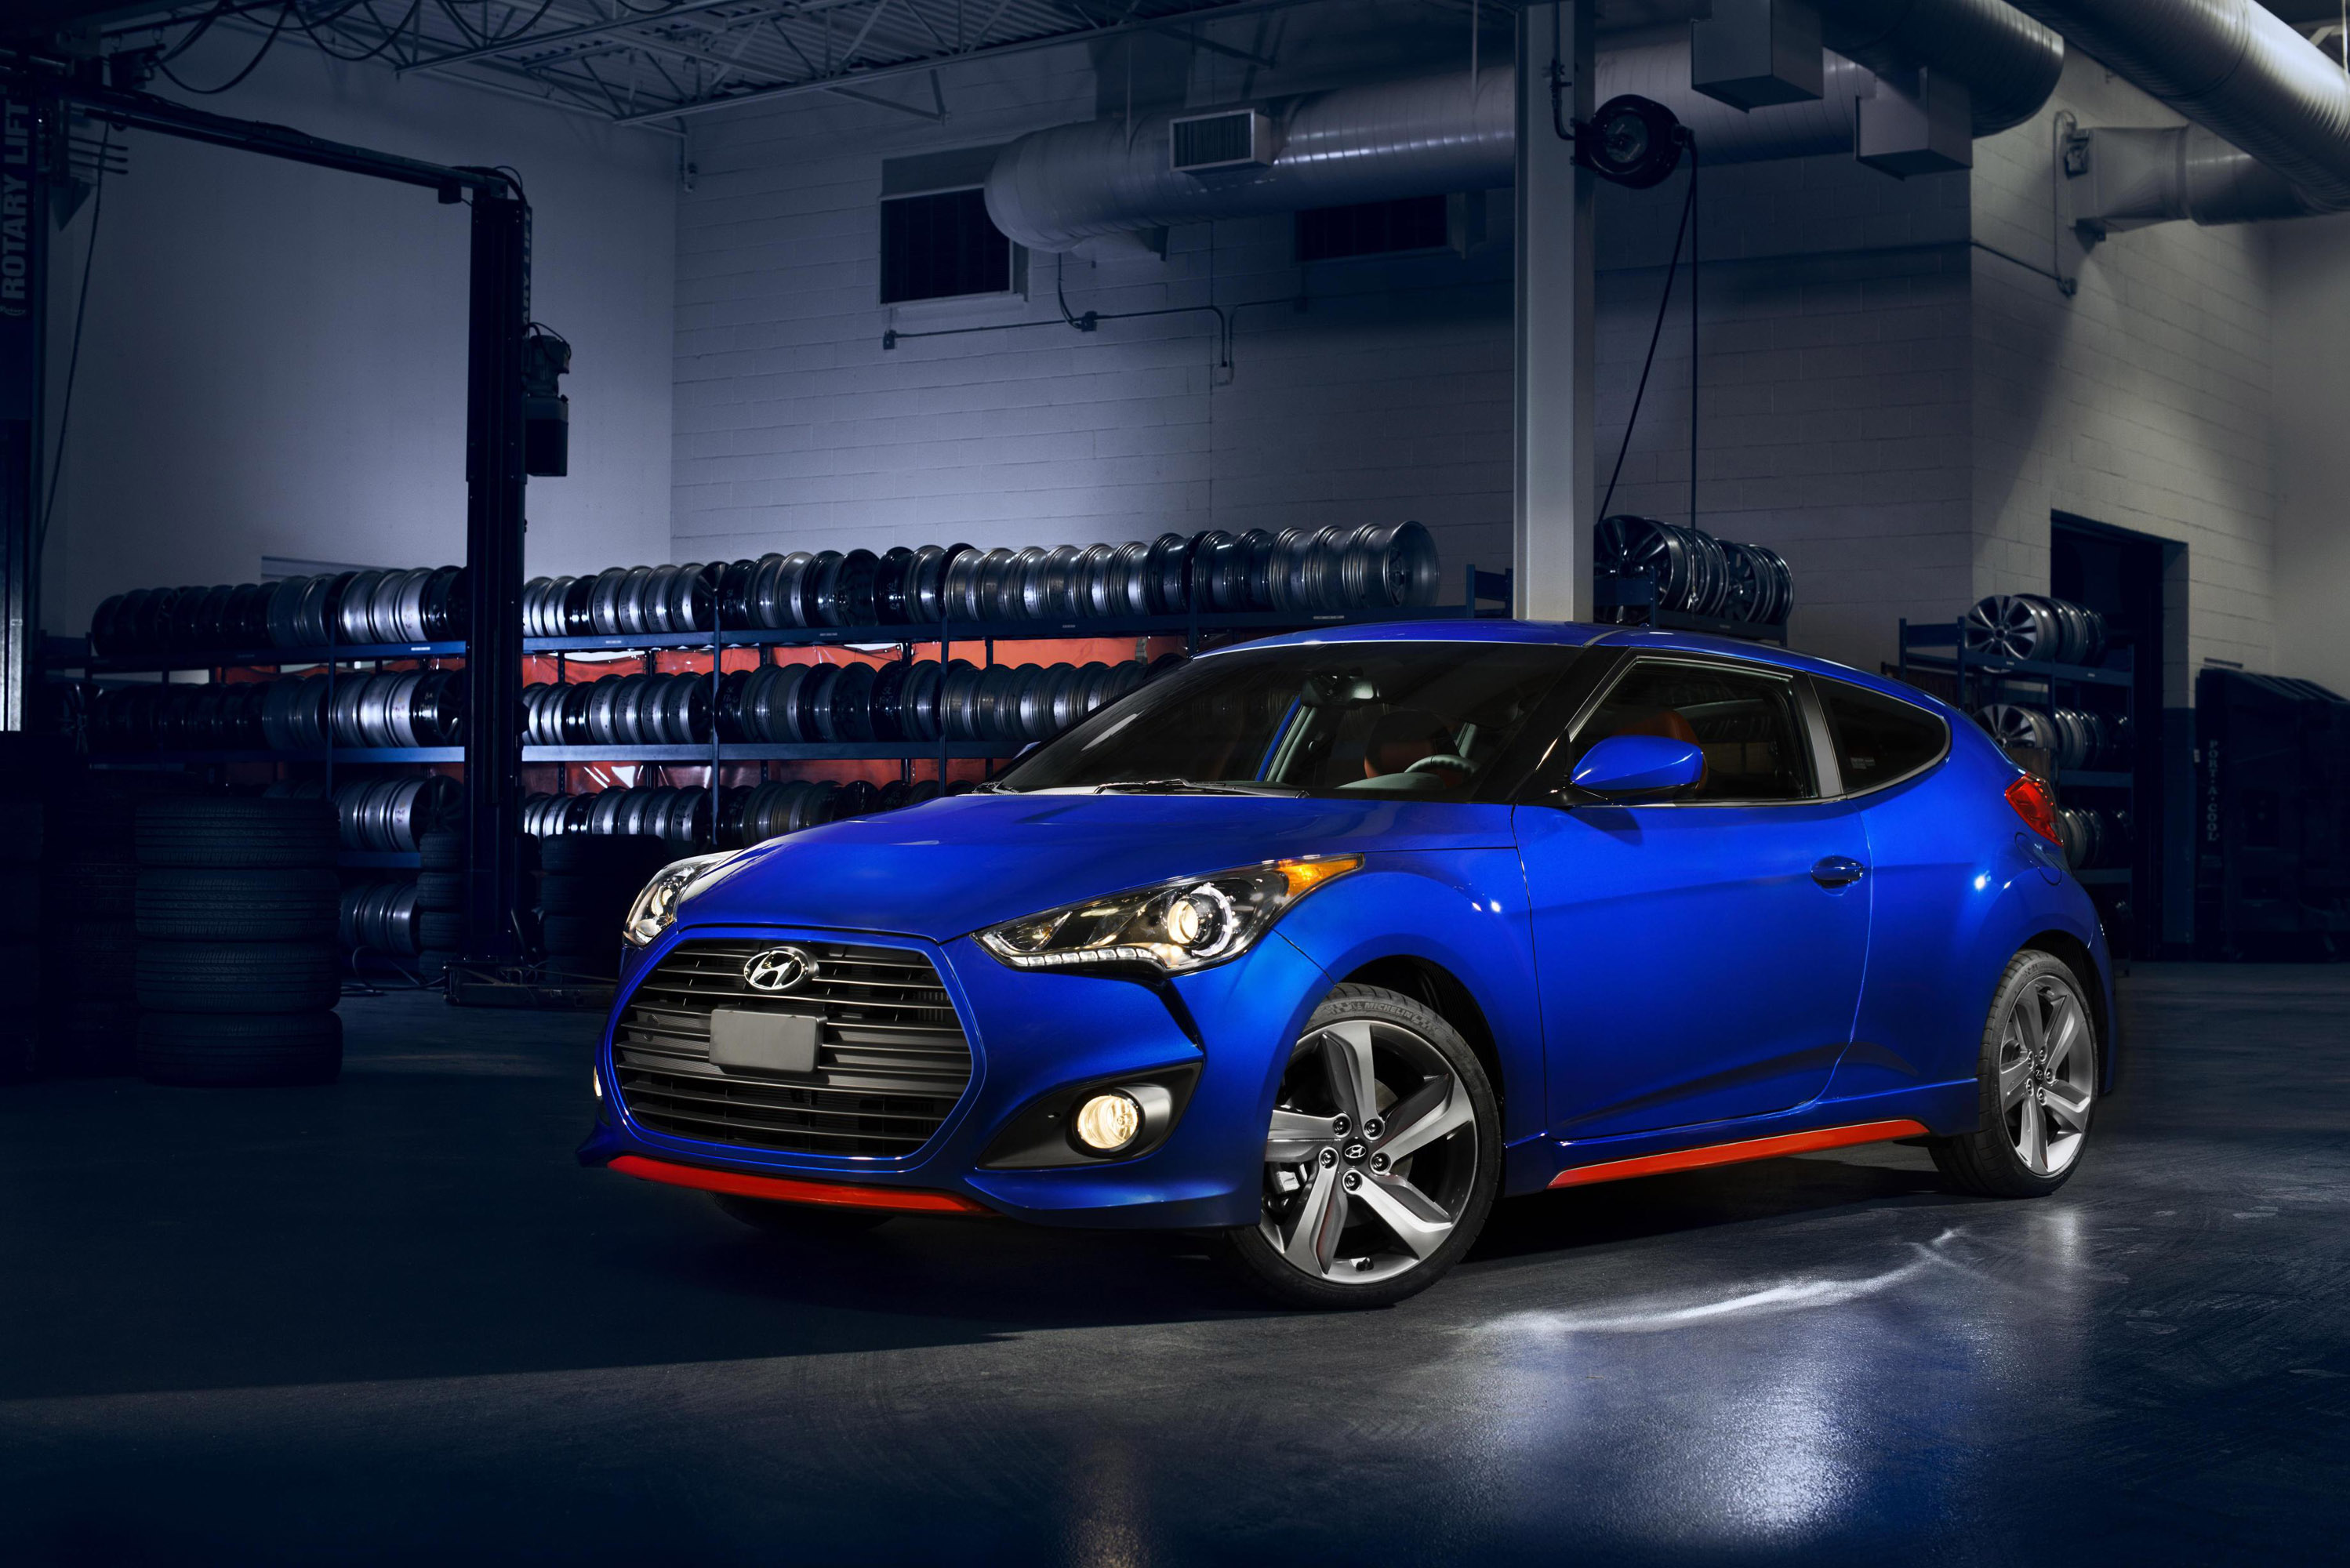 2014 Hyundai Veloster Turbo R-Spec Gets Sporting Equipment